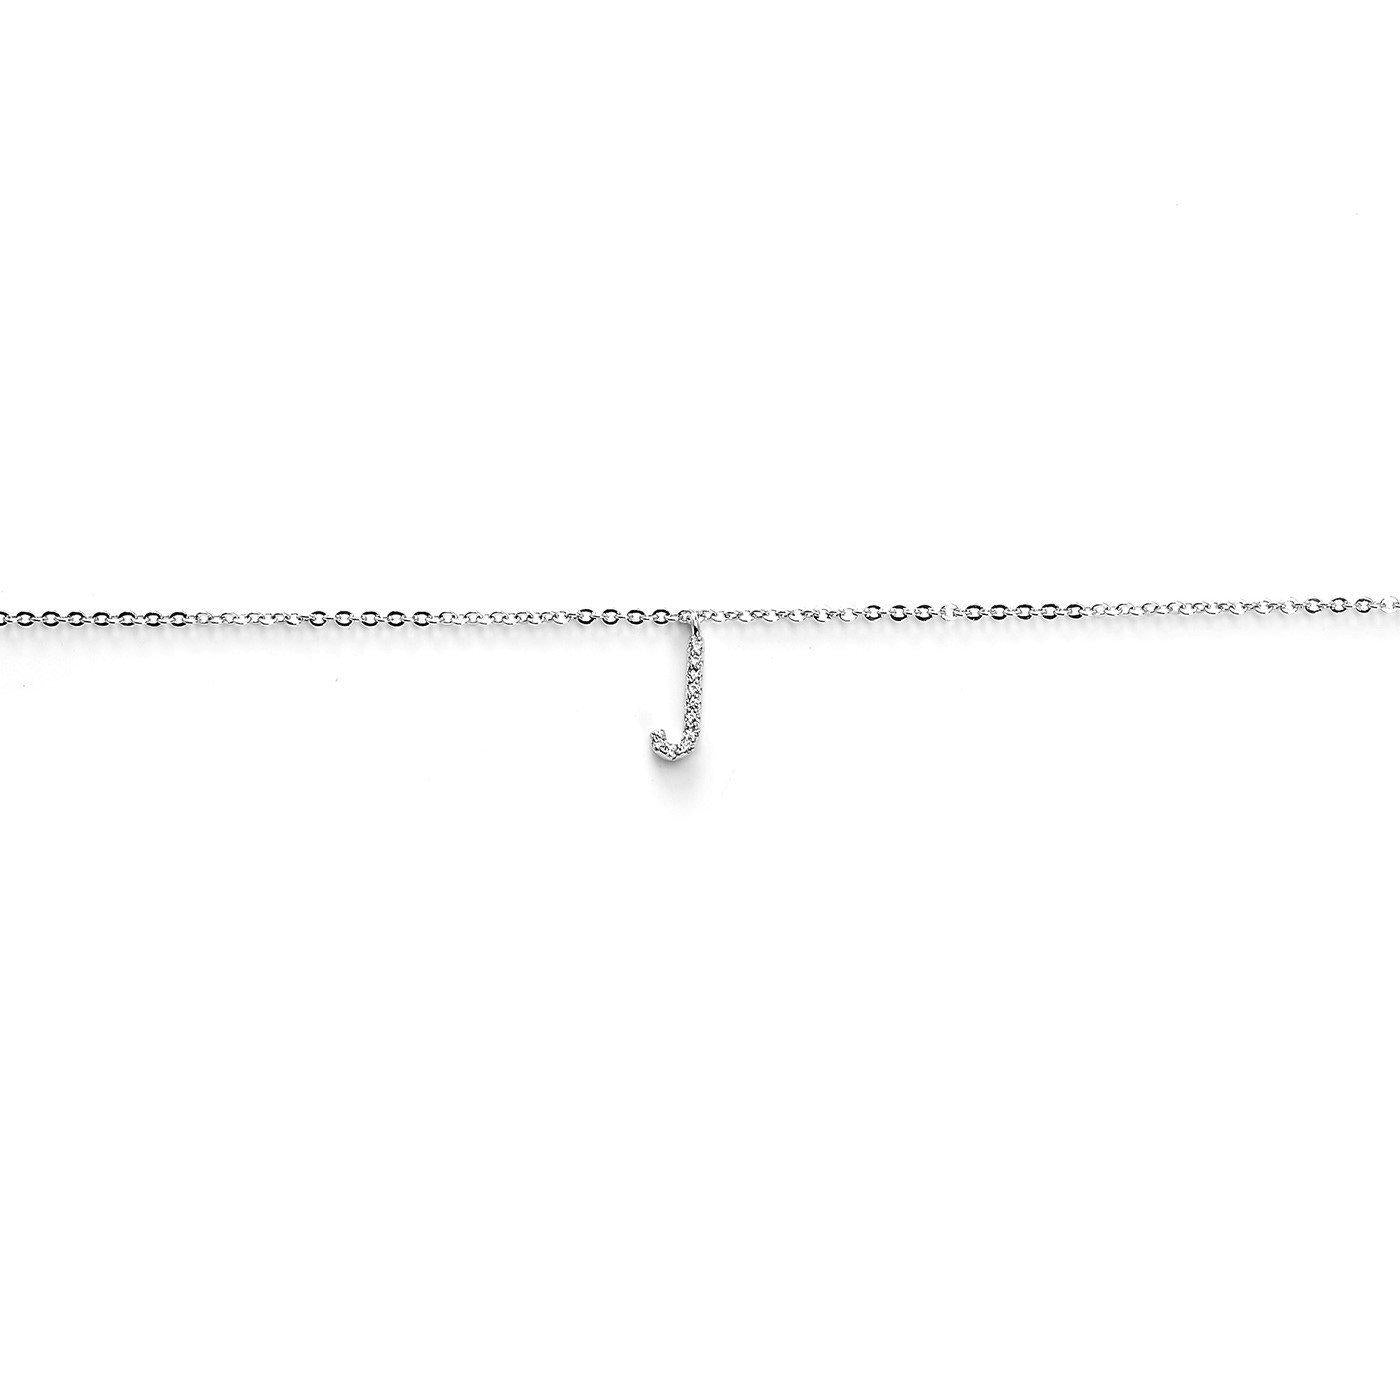 Your Initial J Anklet-Blinglane